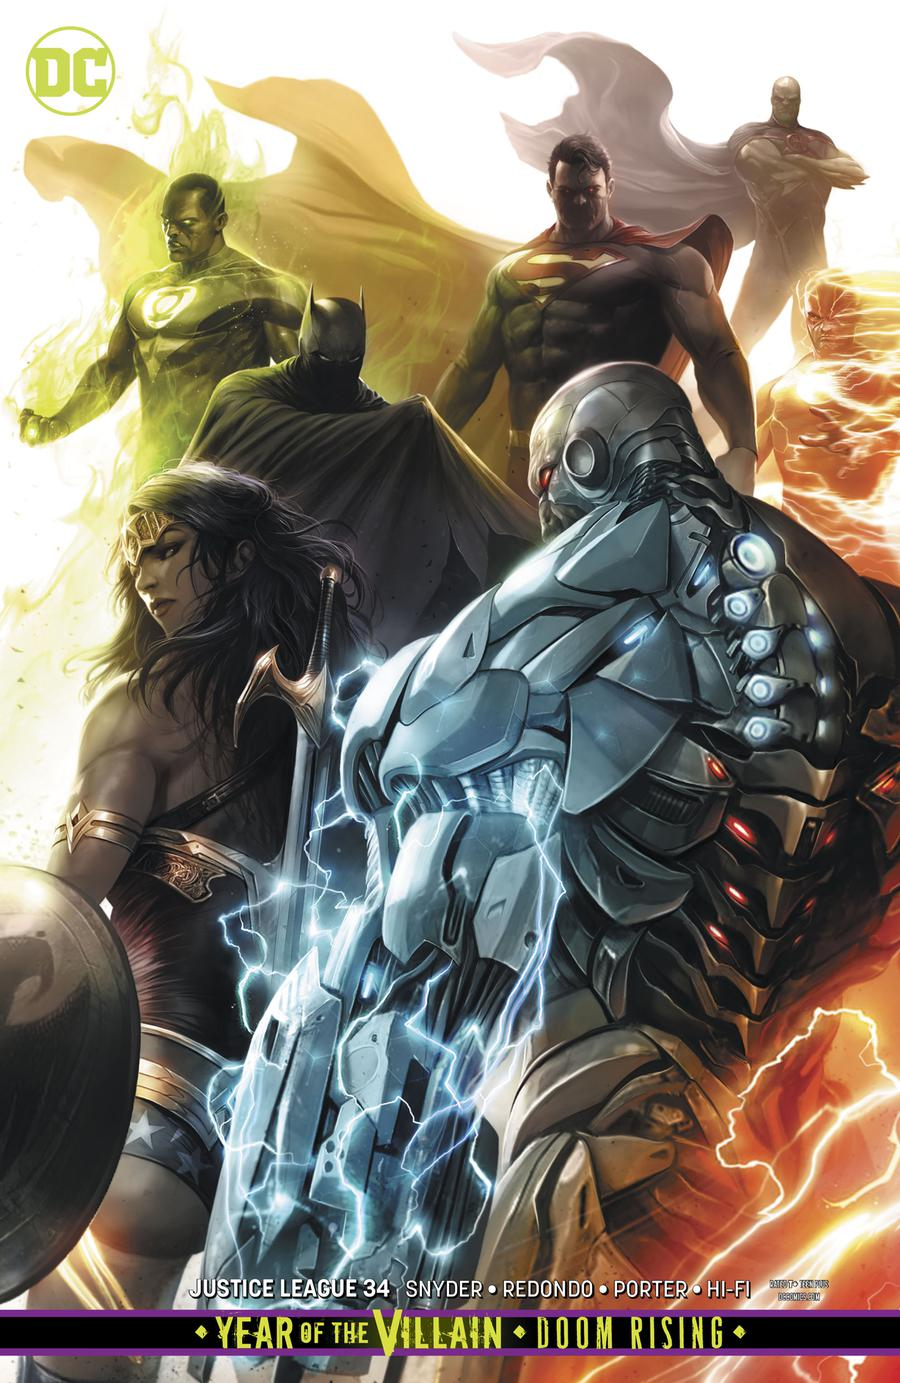 Justice League Vol 4 #34 Cover B Variant Francesco Mattina Card Stock Cover (Year Of The Villain Doom Rising Tie-In)